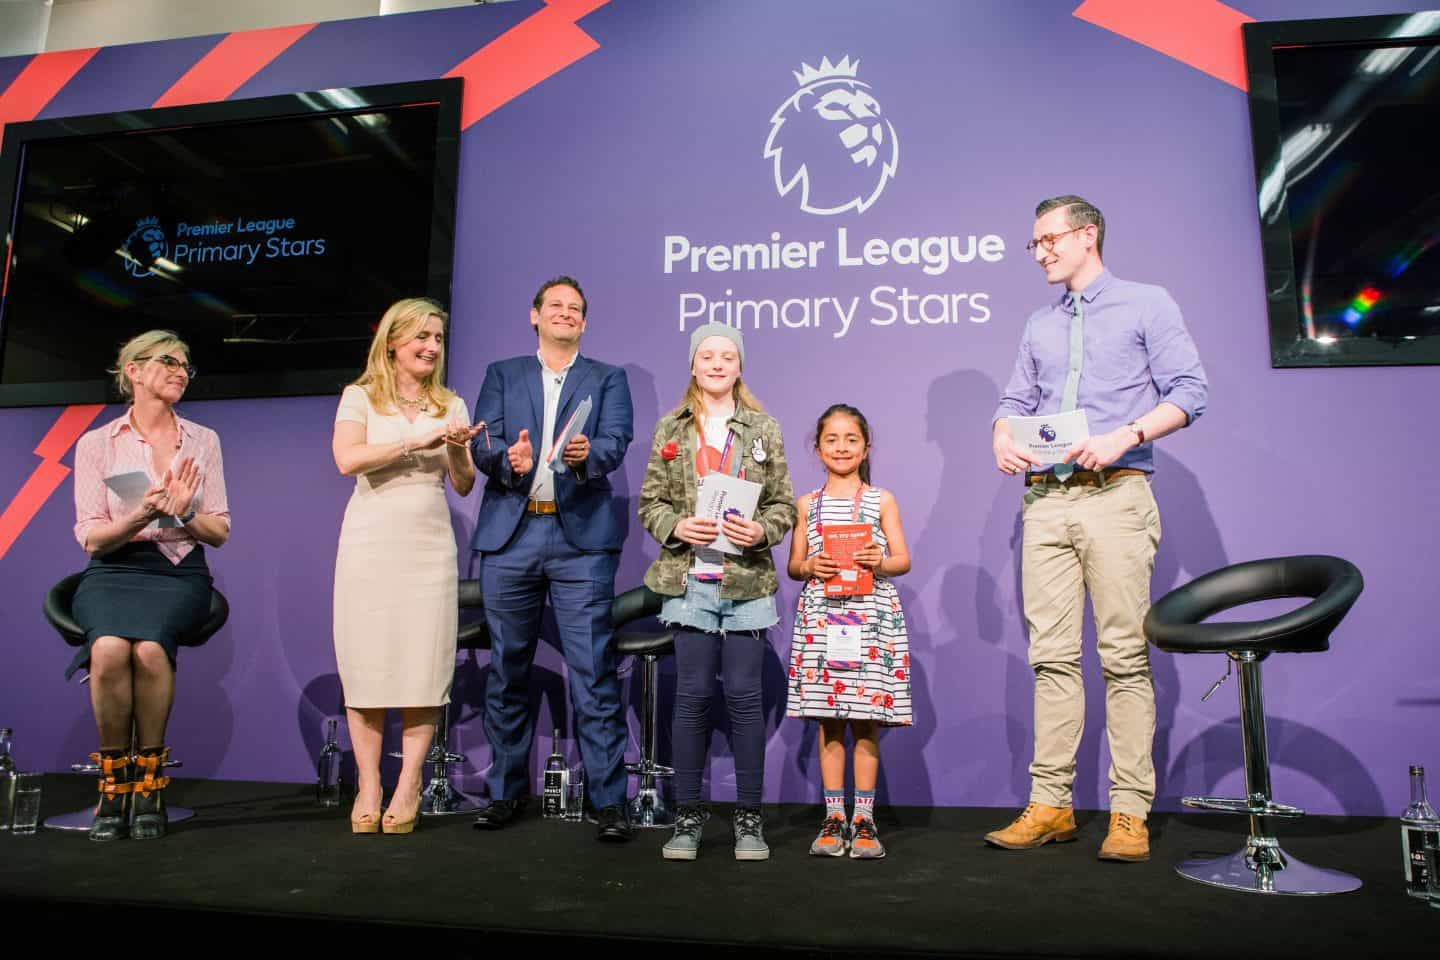 Premier League Primary Stars – One Year On